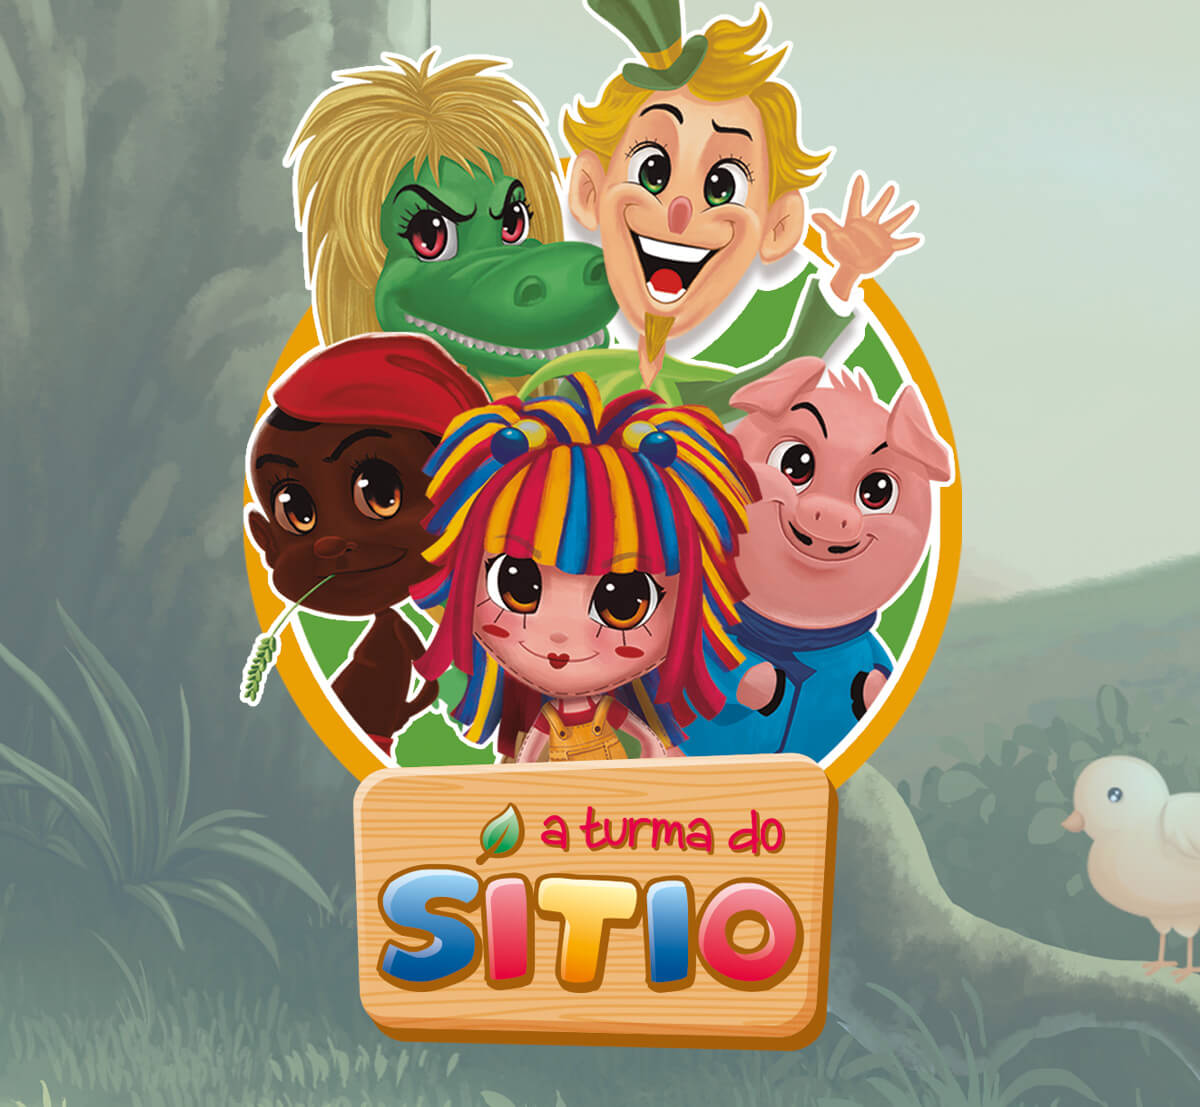 A Turma do Sítio